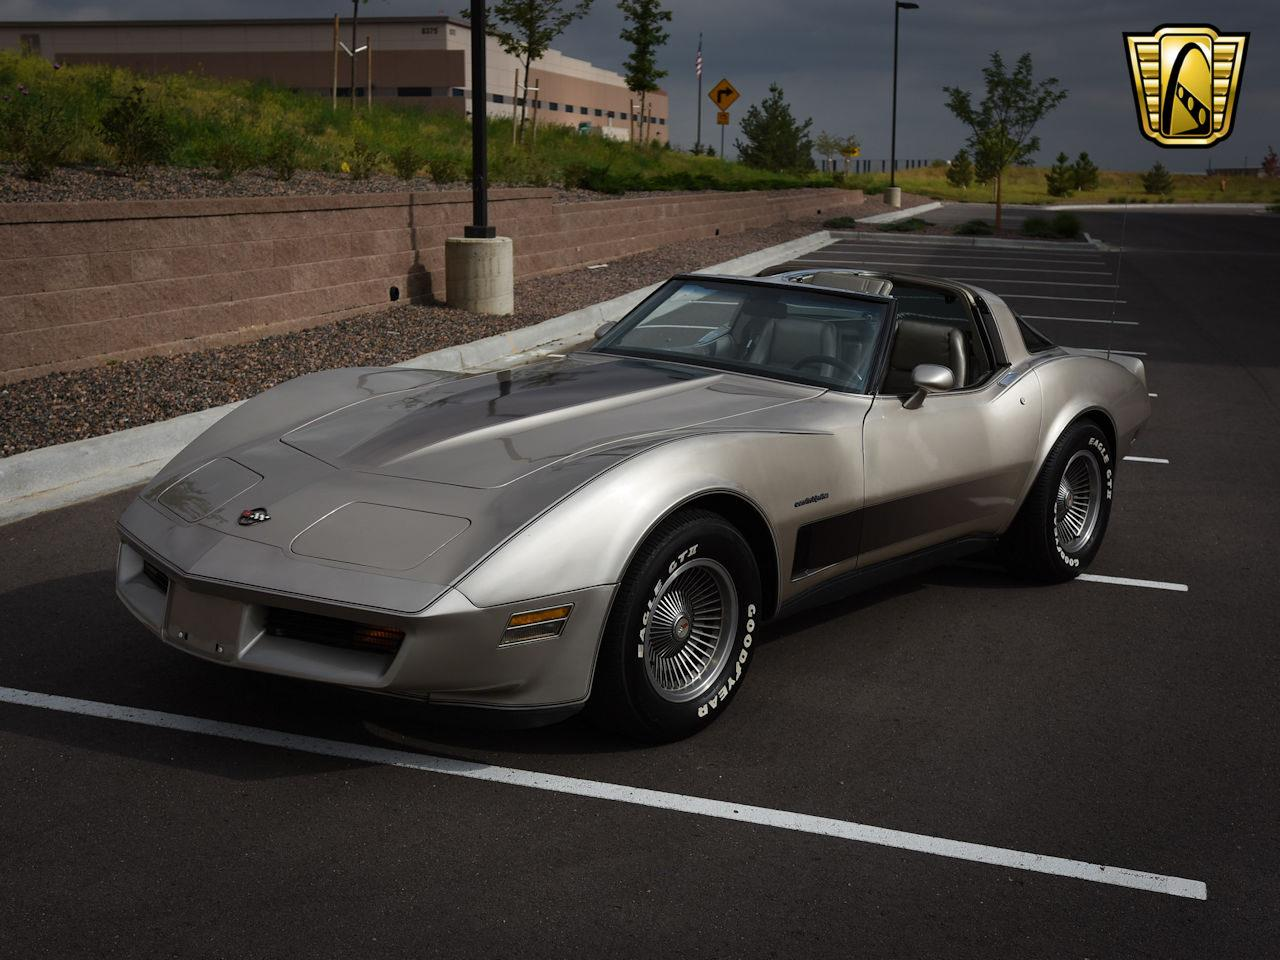 Large Picture of 1982 Chevrolet Corvette located in Illinois Offered by Gateway Classic Cars - Denver - LNRR